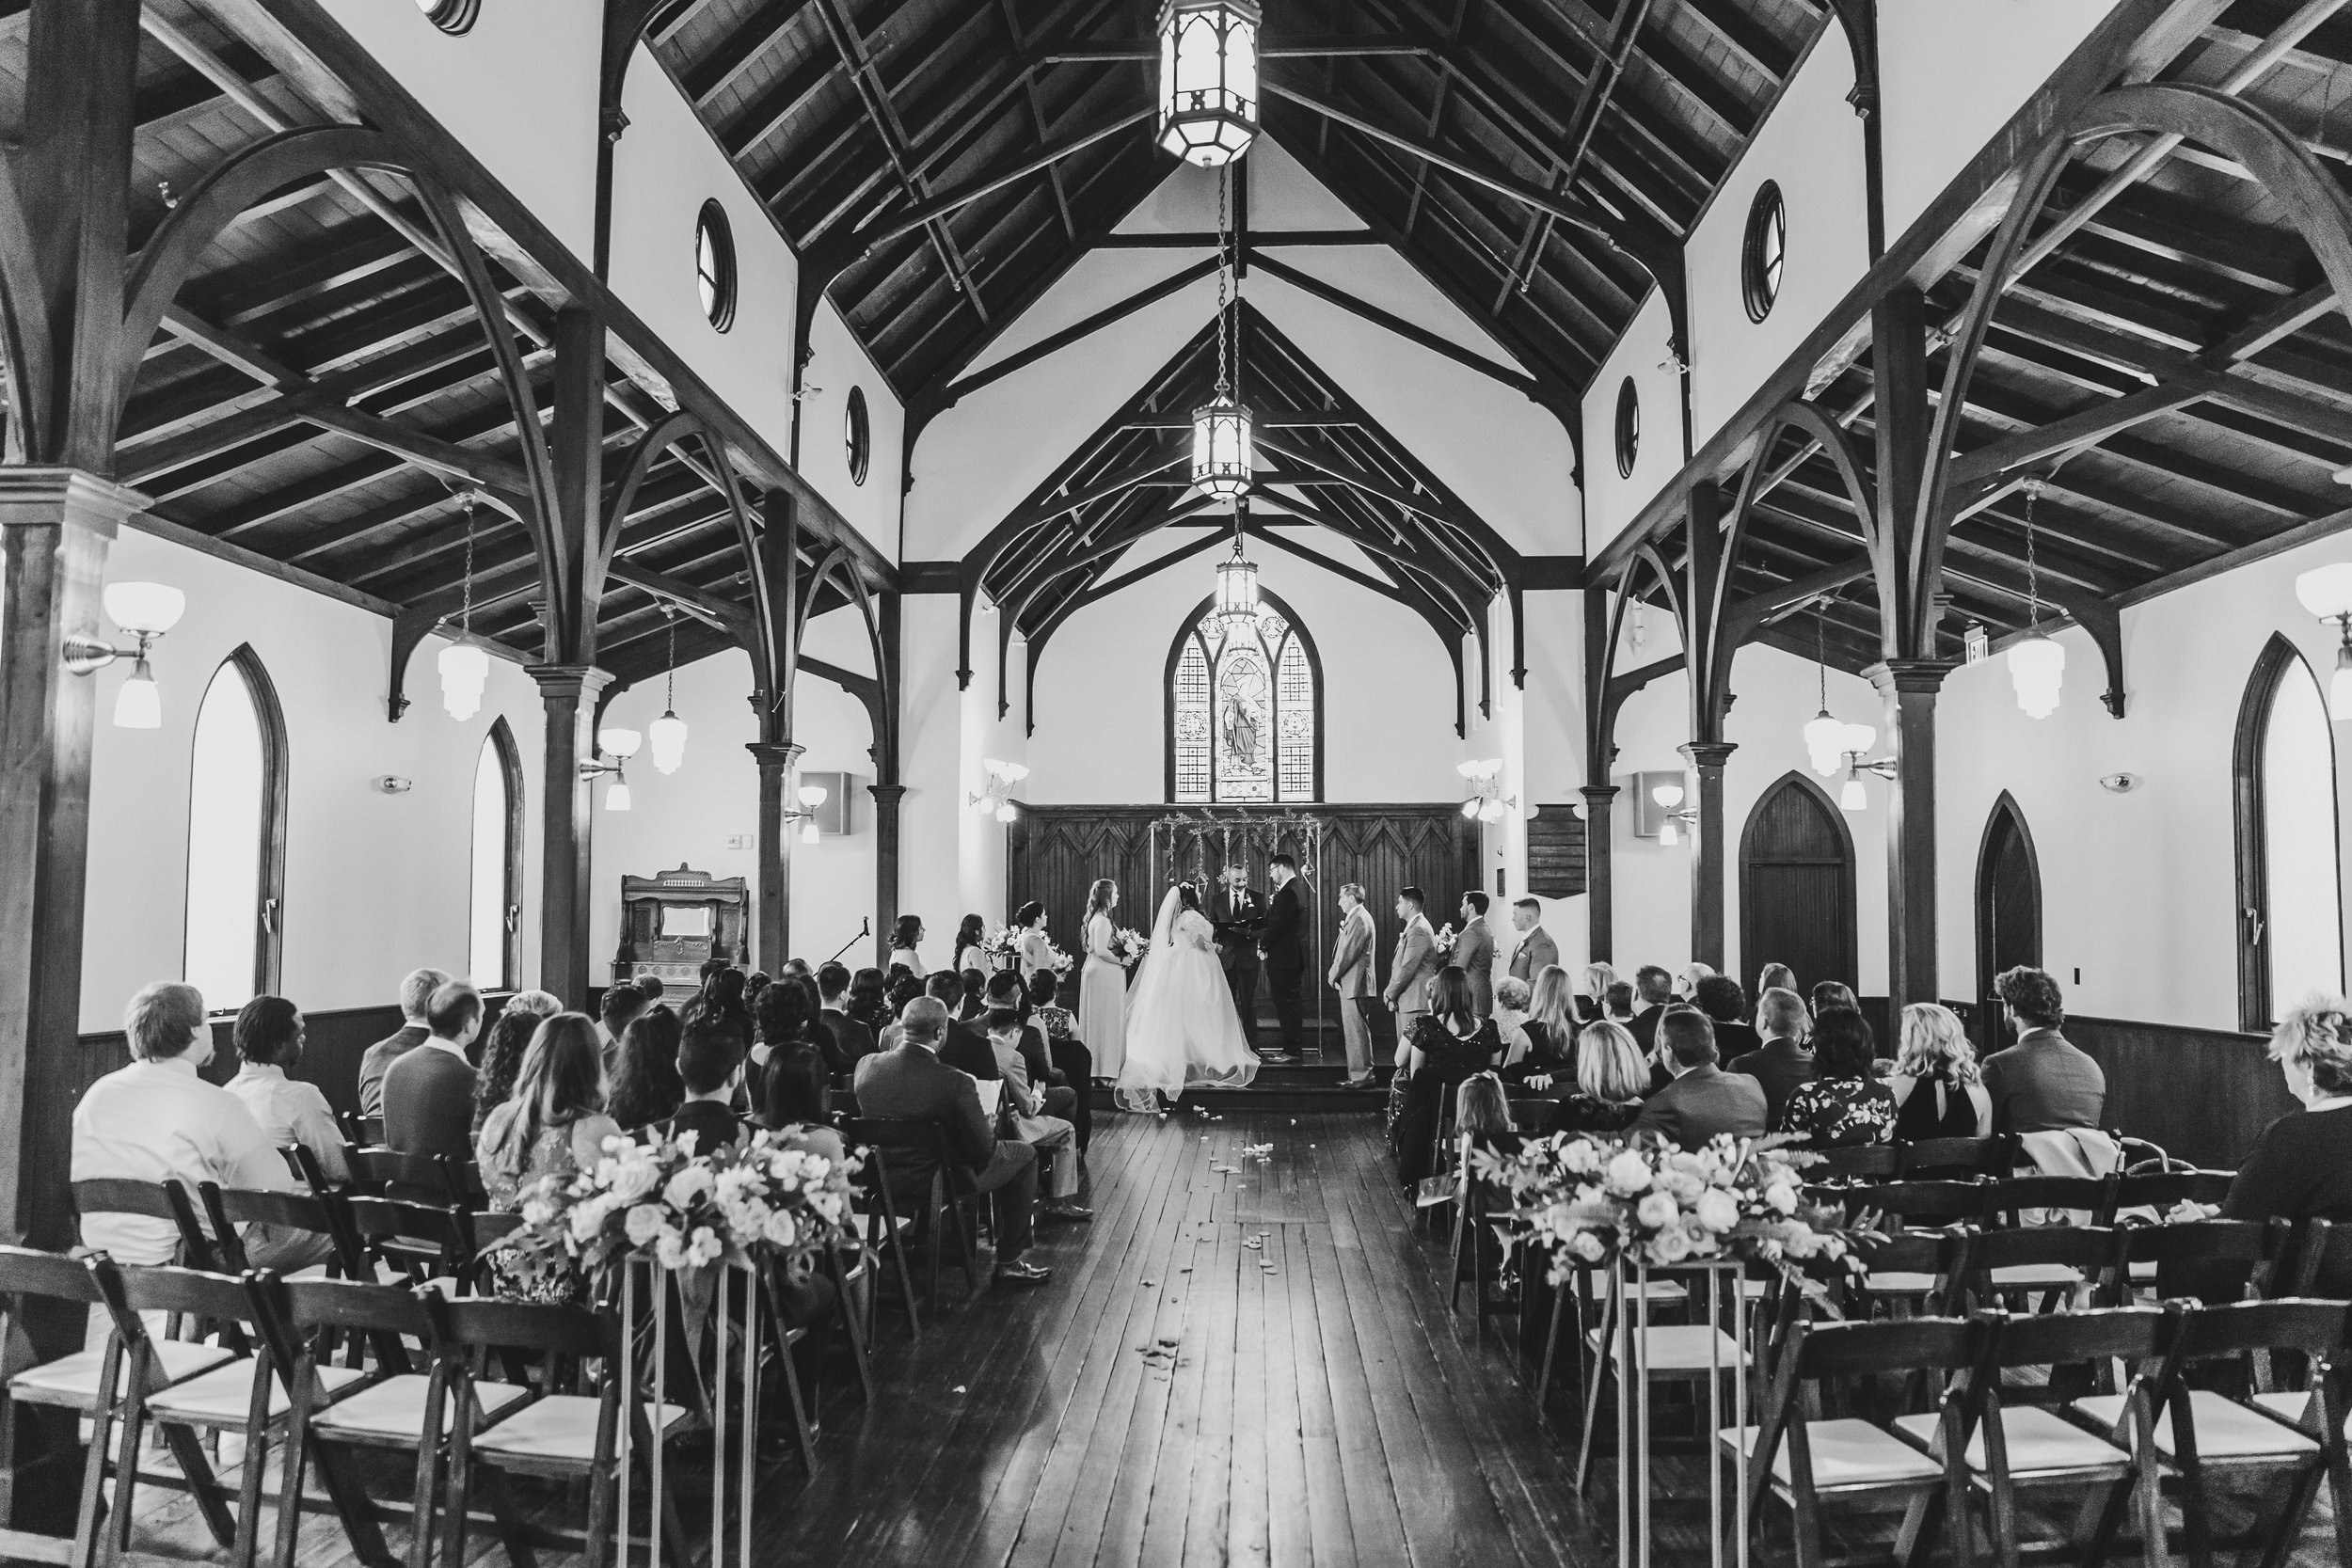 winter-all-saints-chapel-wedding-vanessabill-3824-2.jpg